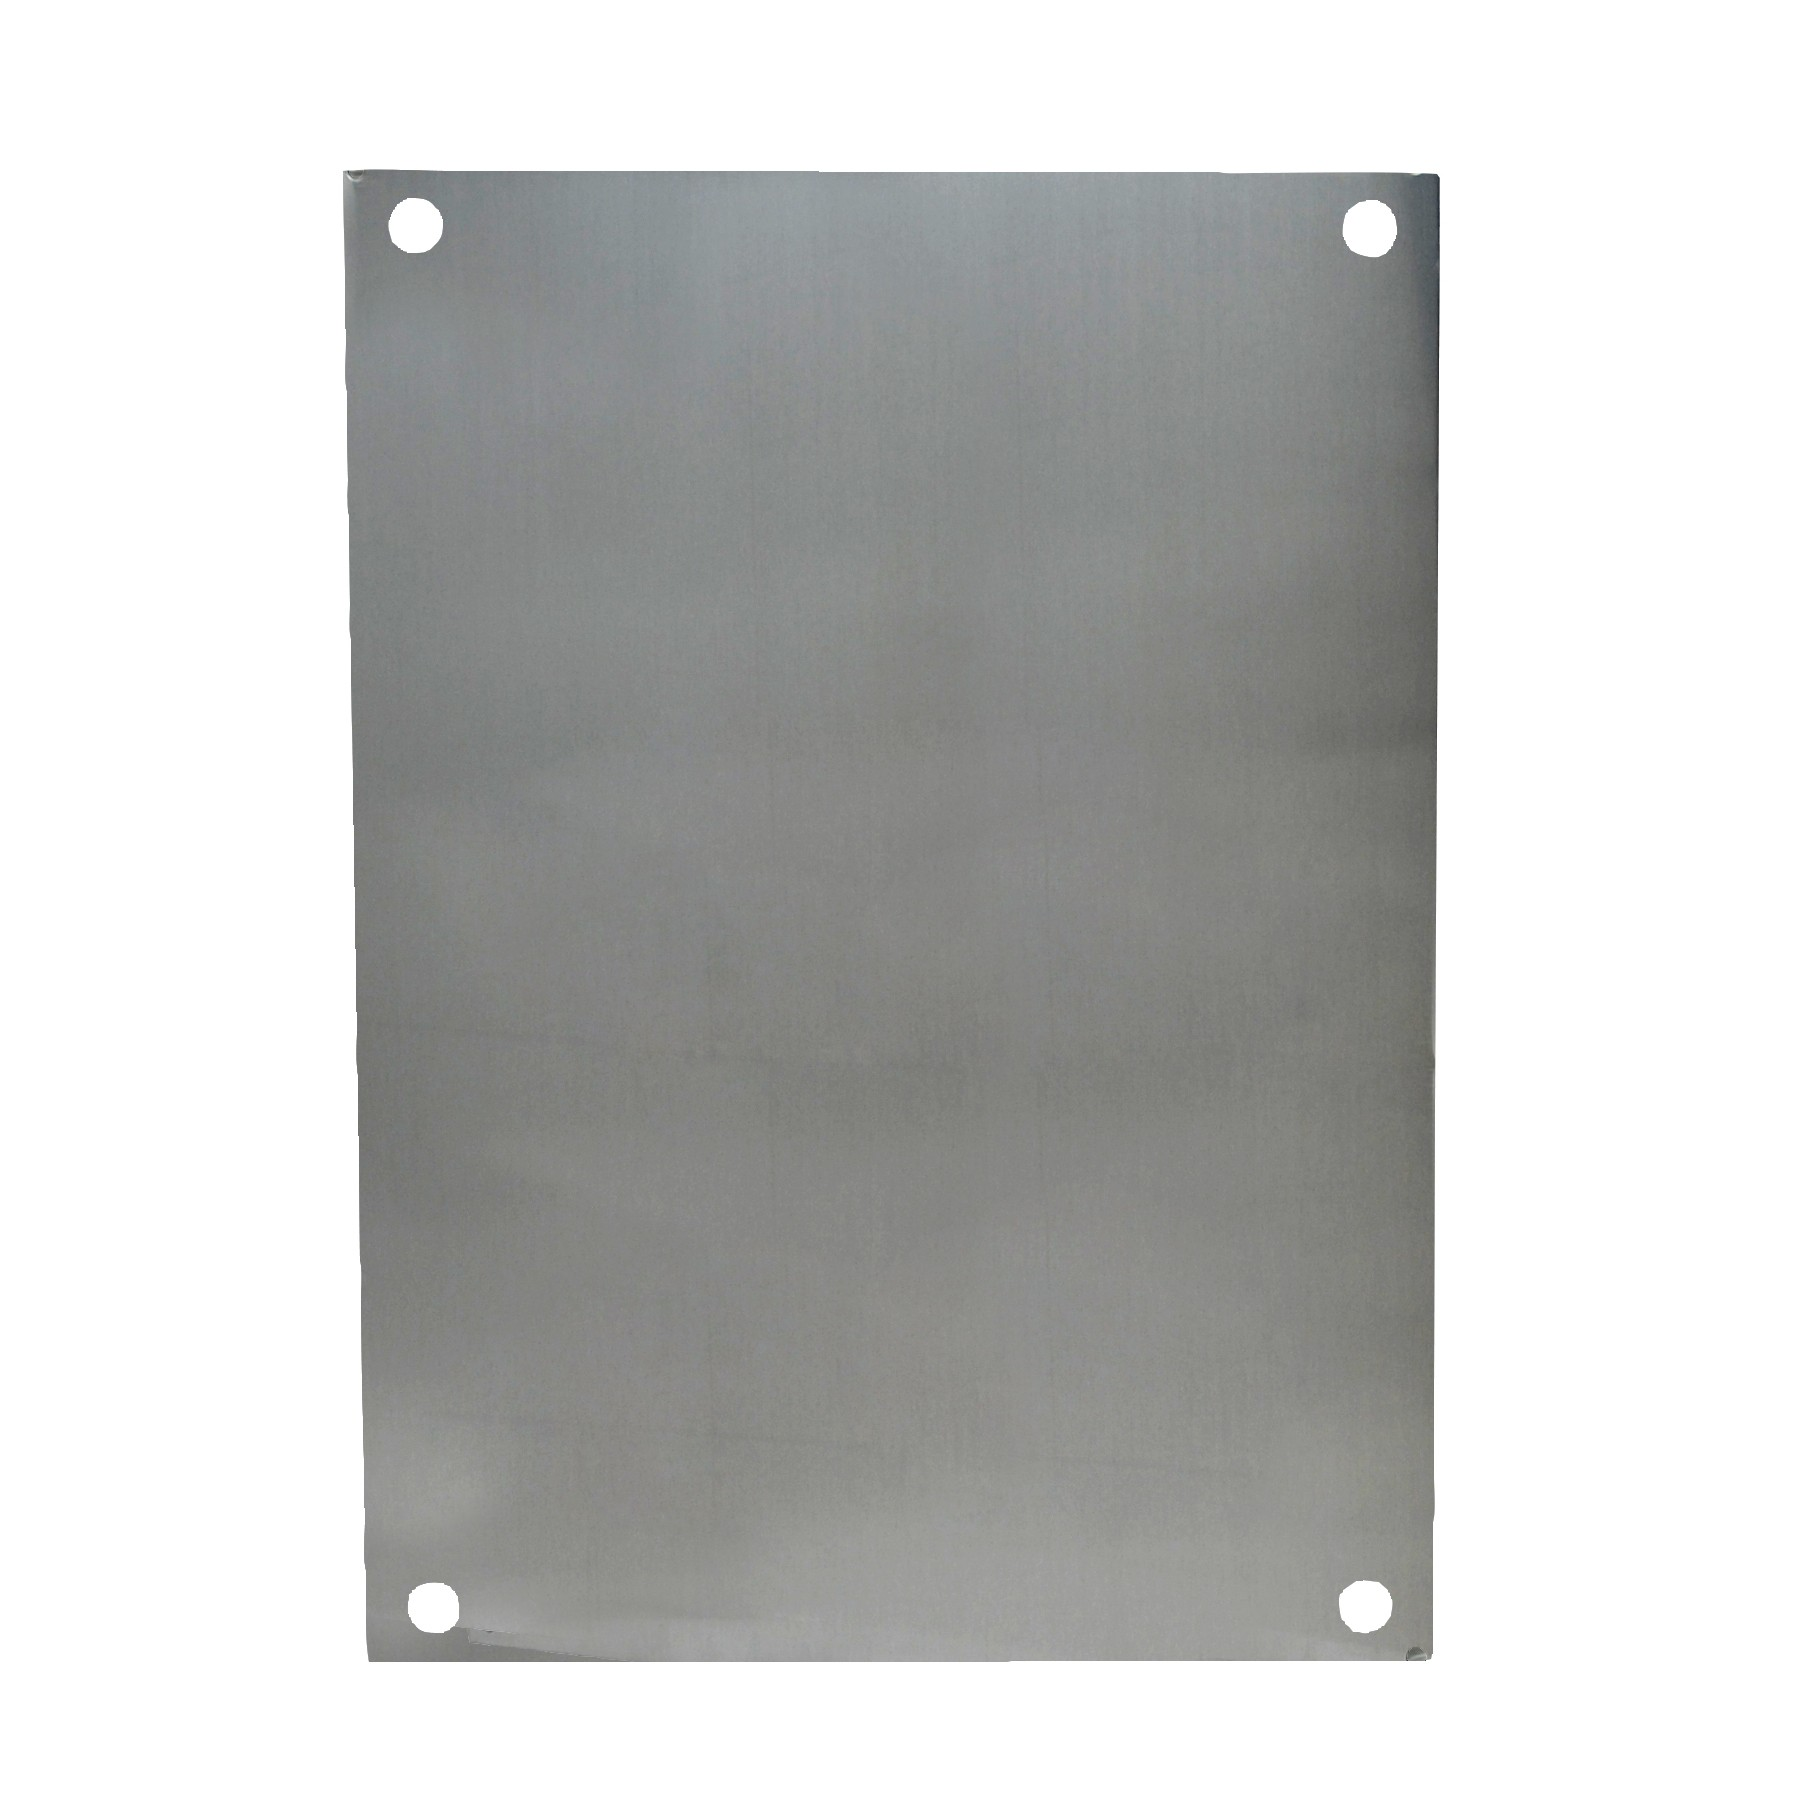 "Aluminum Back Panel for 10"" x 8"" Enclosures"